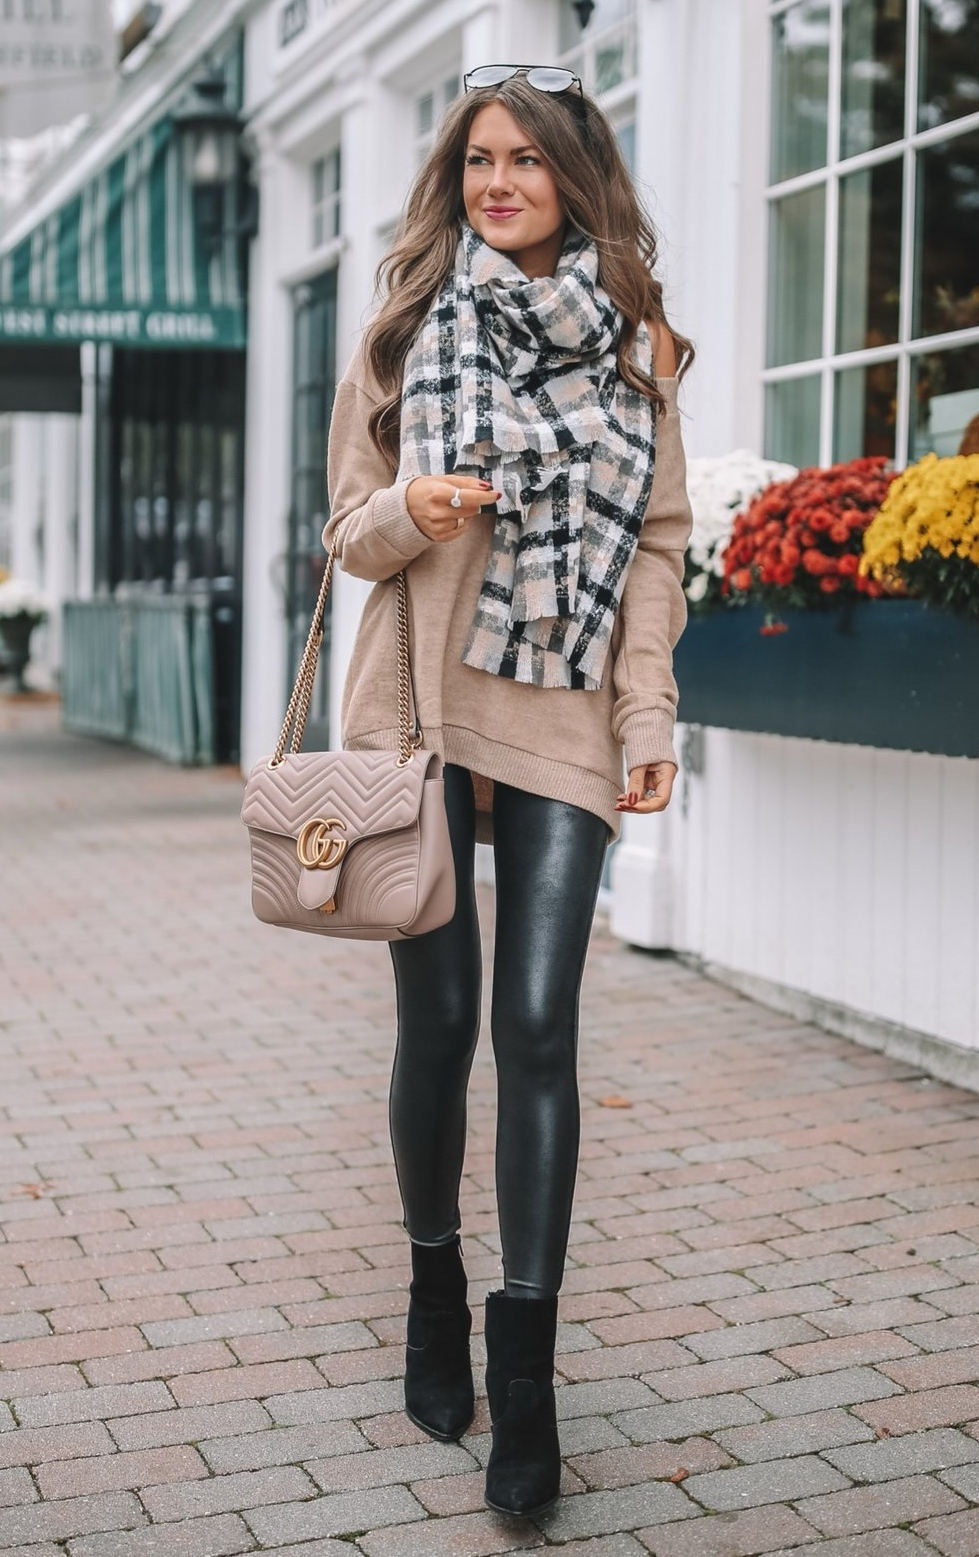 Cute black leggings outfit idea with plaid scarf, beige sweater and Gucci bag